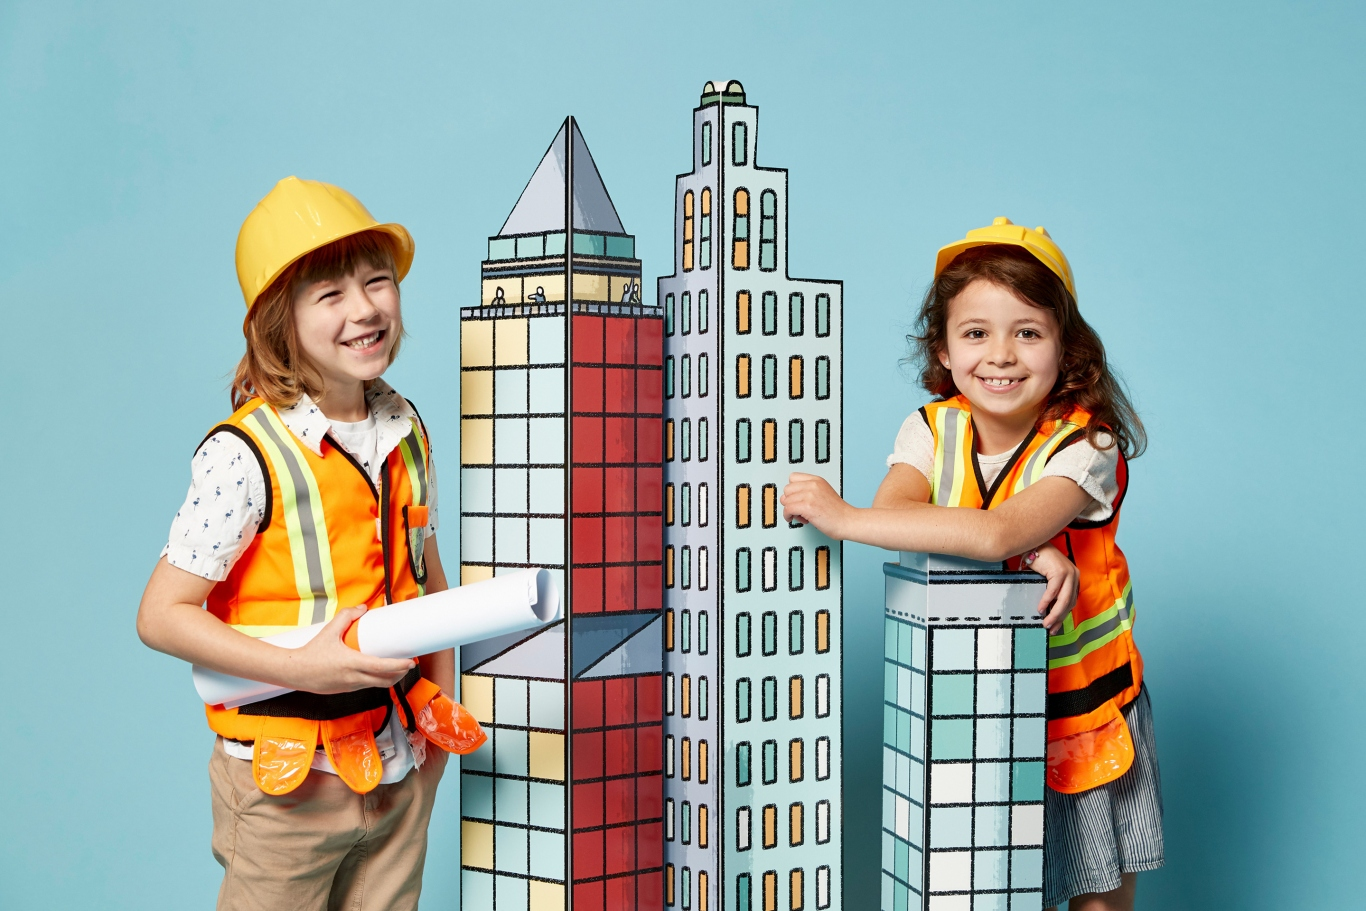 Two kids dressed in hard hats and hi-vis vests with model of cityscape.